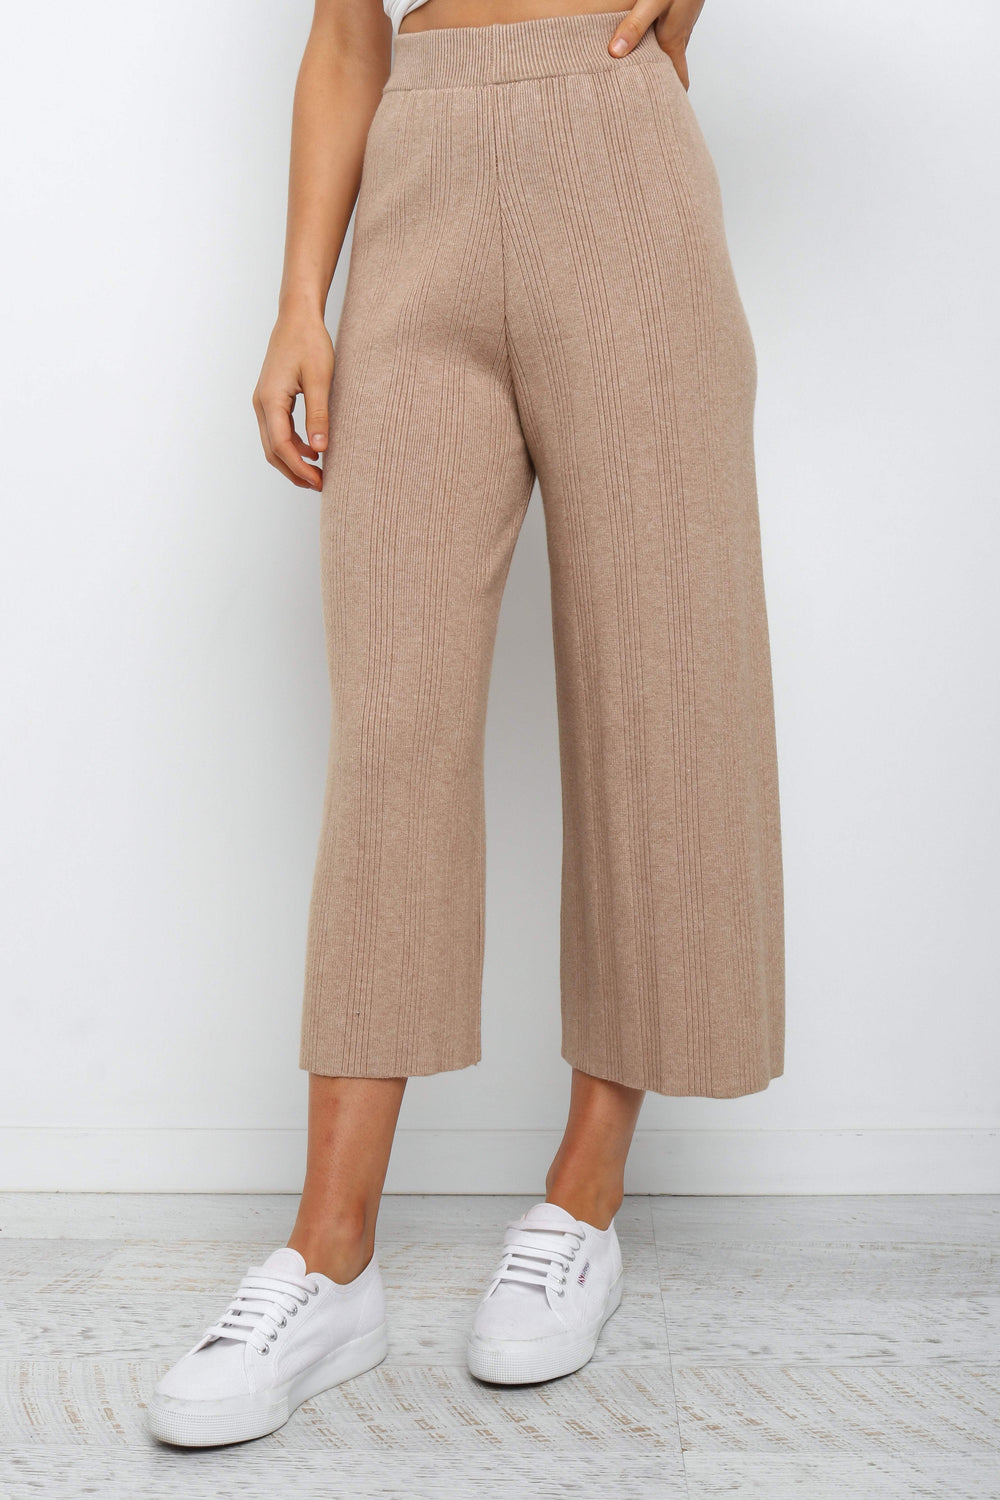 BOTTOMS ***Barstow Pant - Mocha